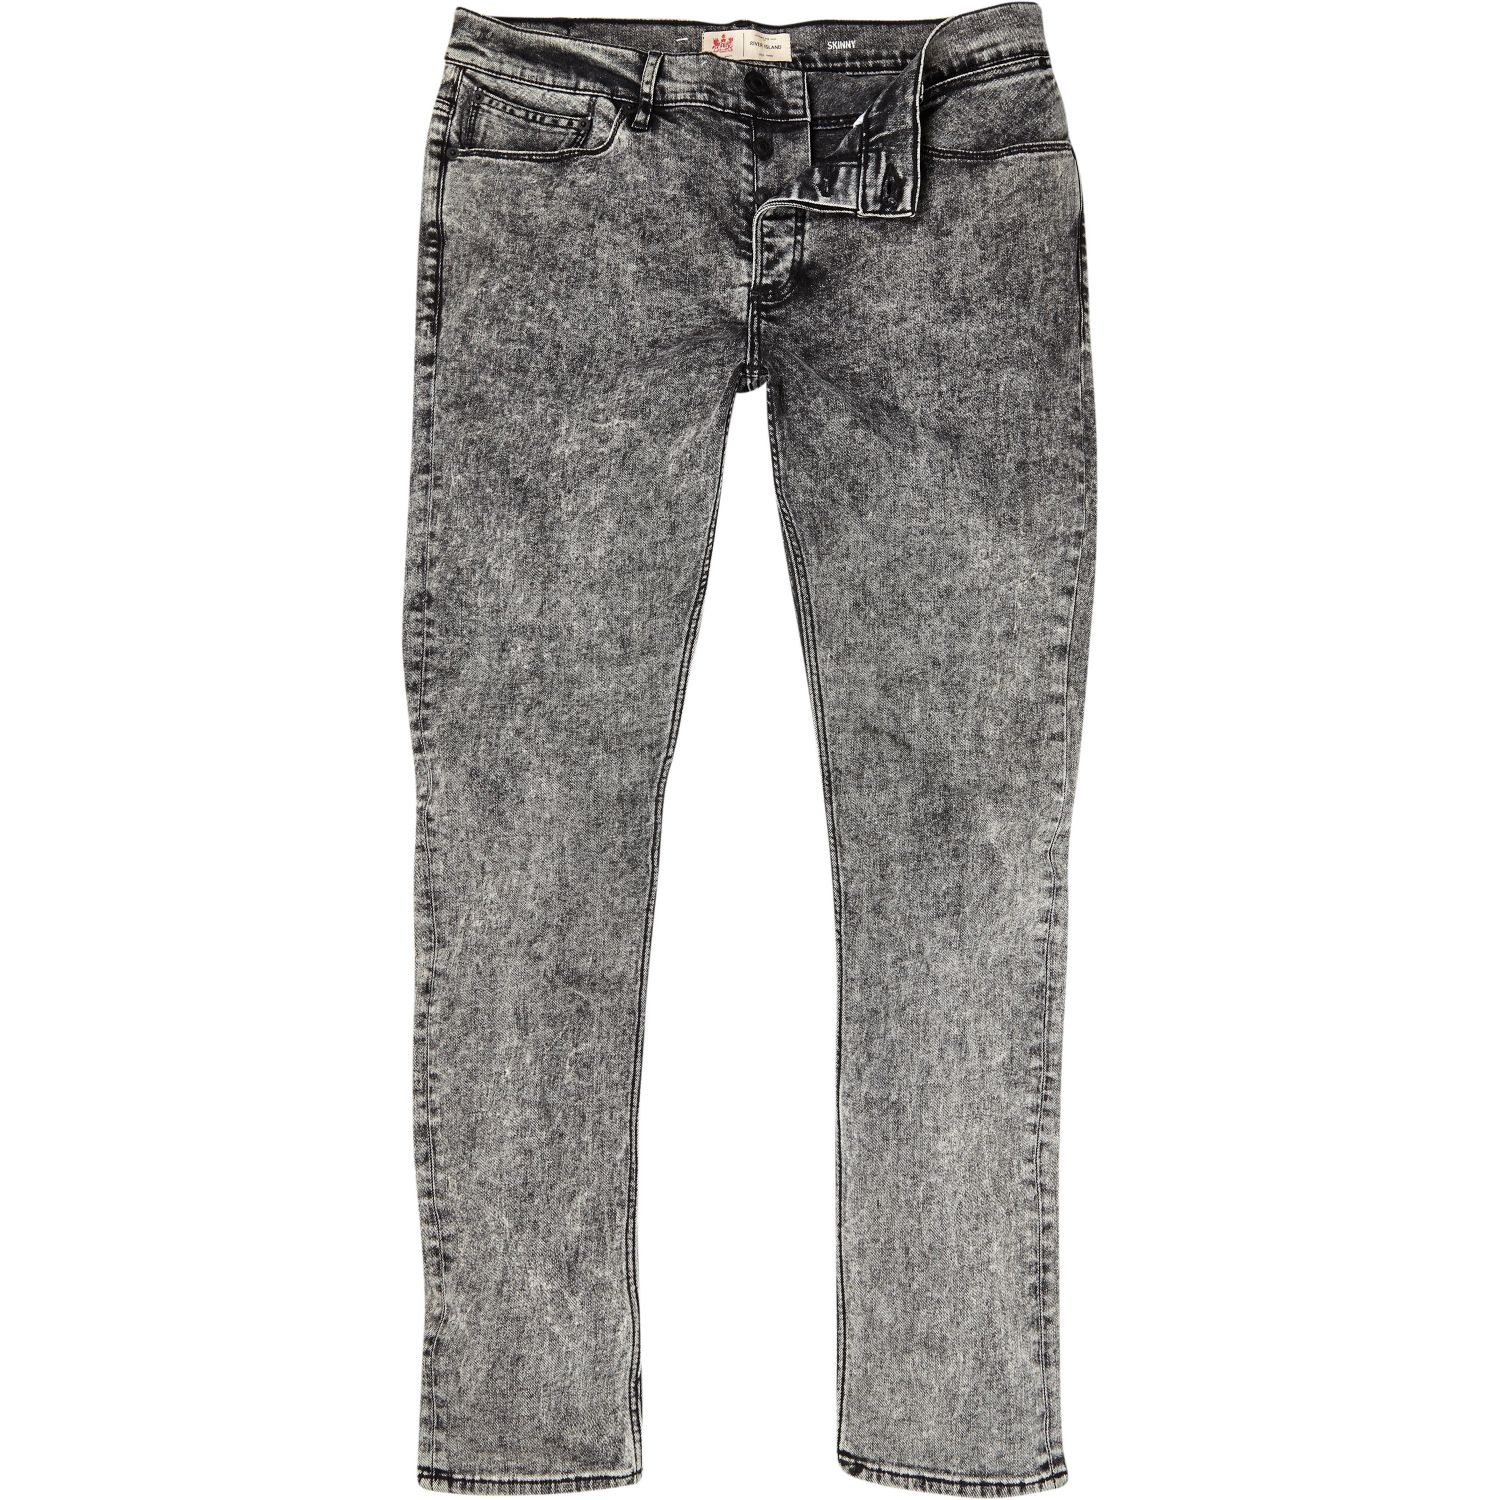 Find every men's jeans fit and wash you'll love from American Eagle Outfitters. Choose from Classic Bootcut, Slim Straight, Skinny and more in light and dark washes from America's favorite denim brand.